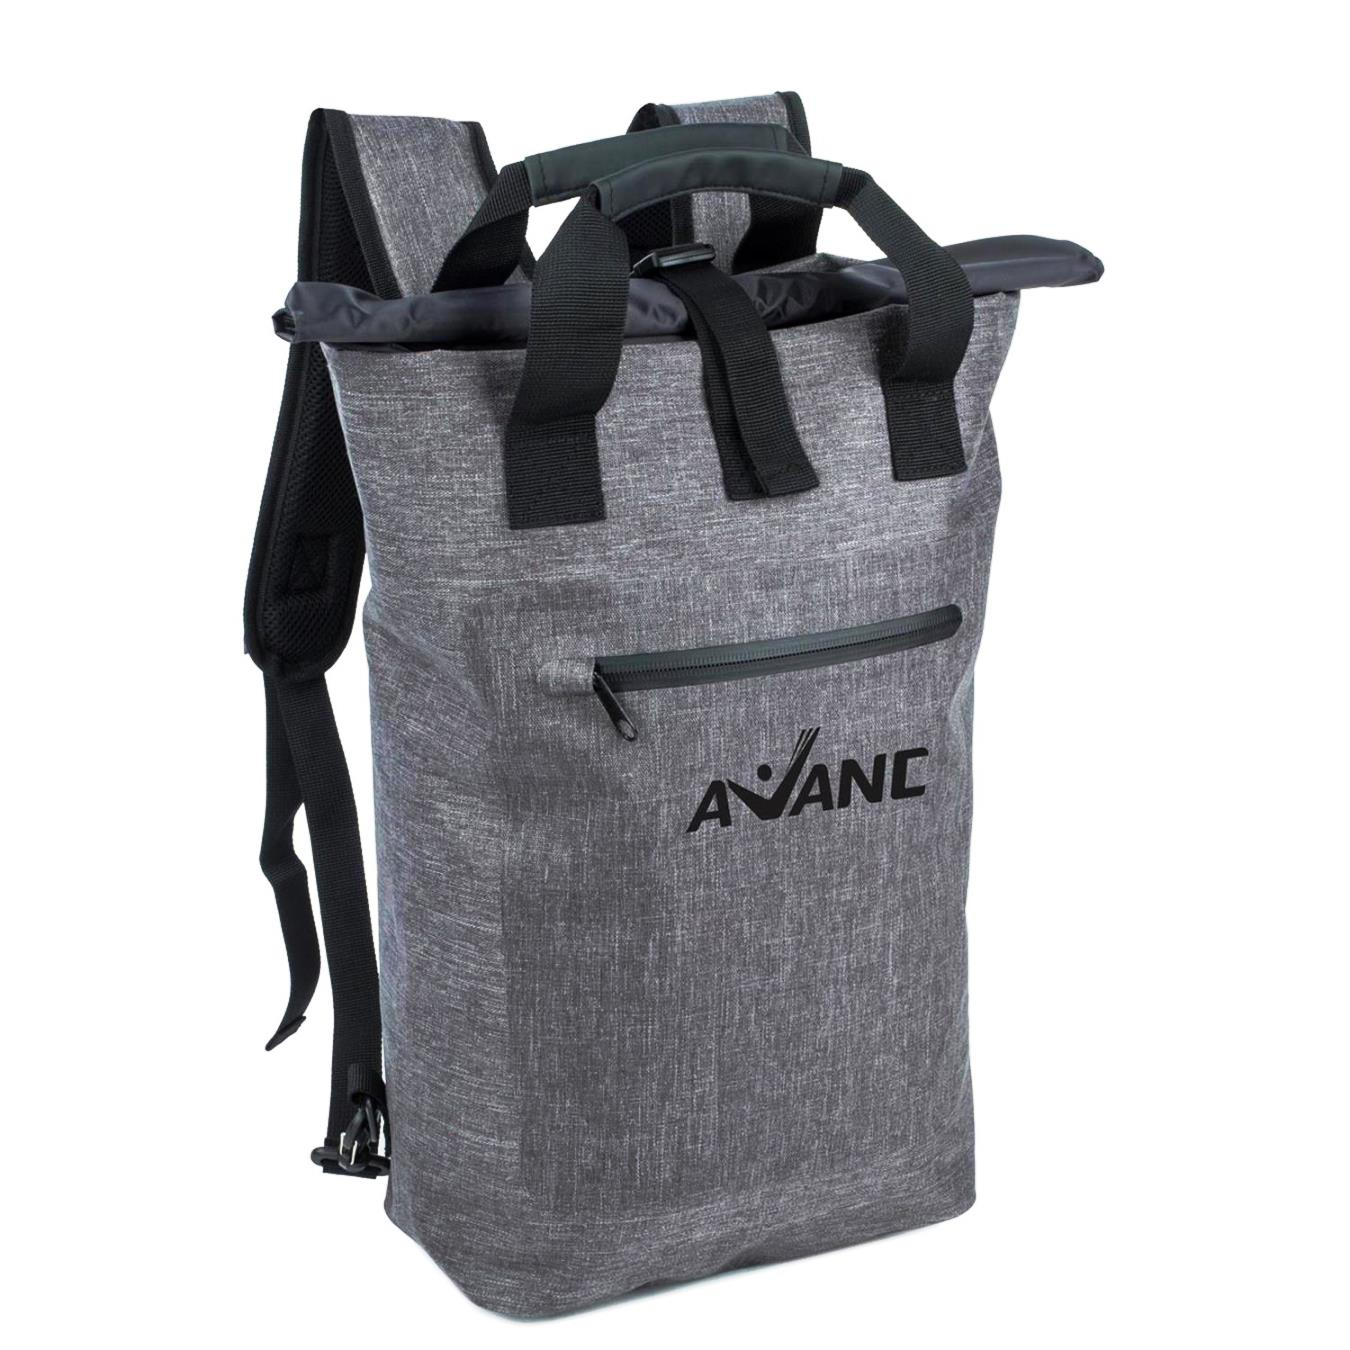 Extreme  SPACE GREY Roll Top Seal Sports Bag, Waterproof daypack 20L